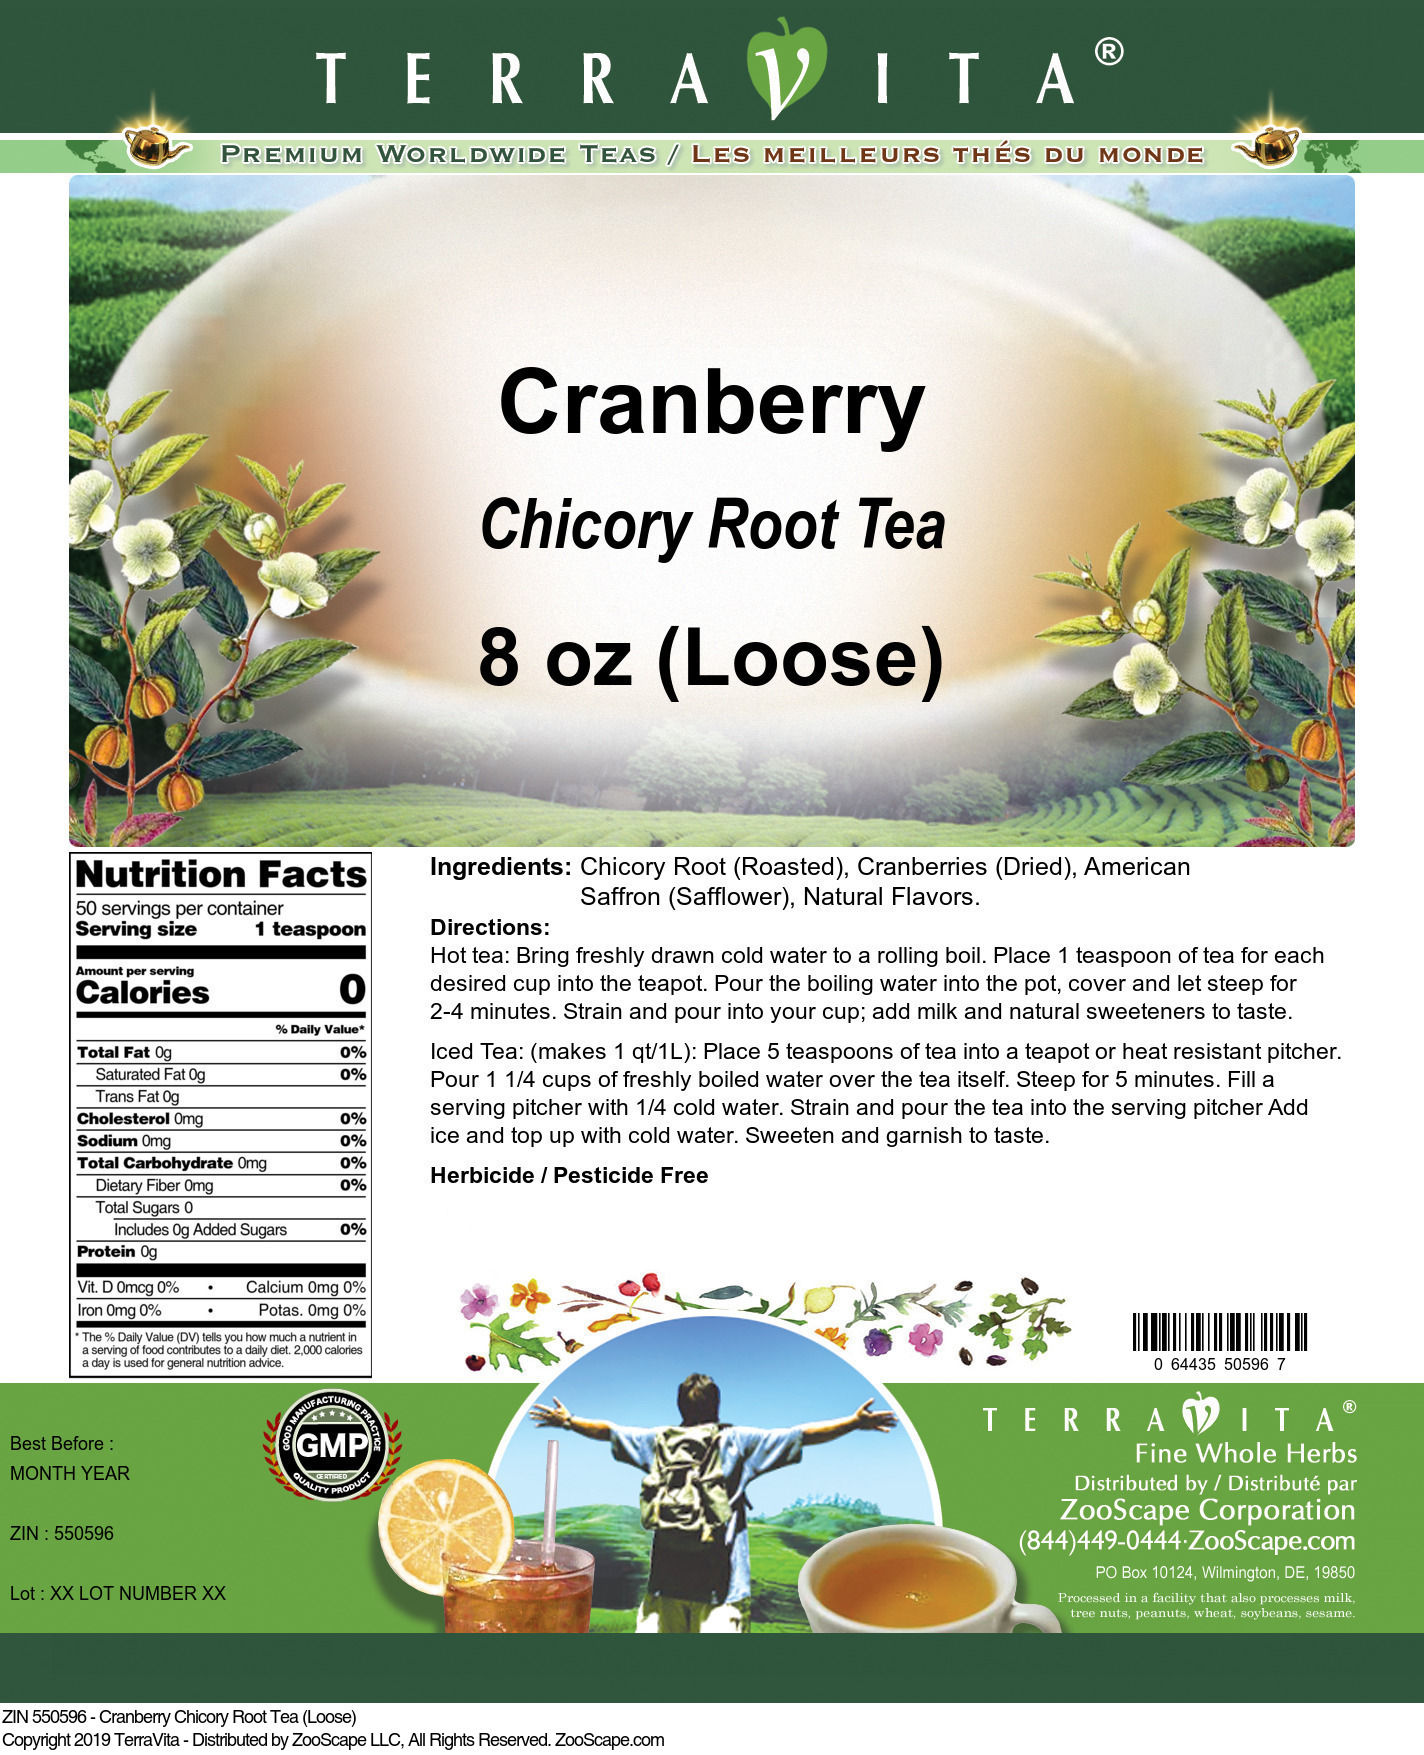 Cranberry Chicory Root